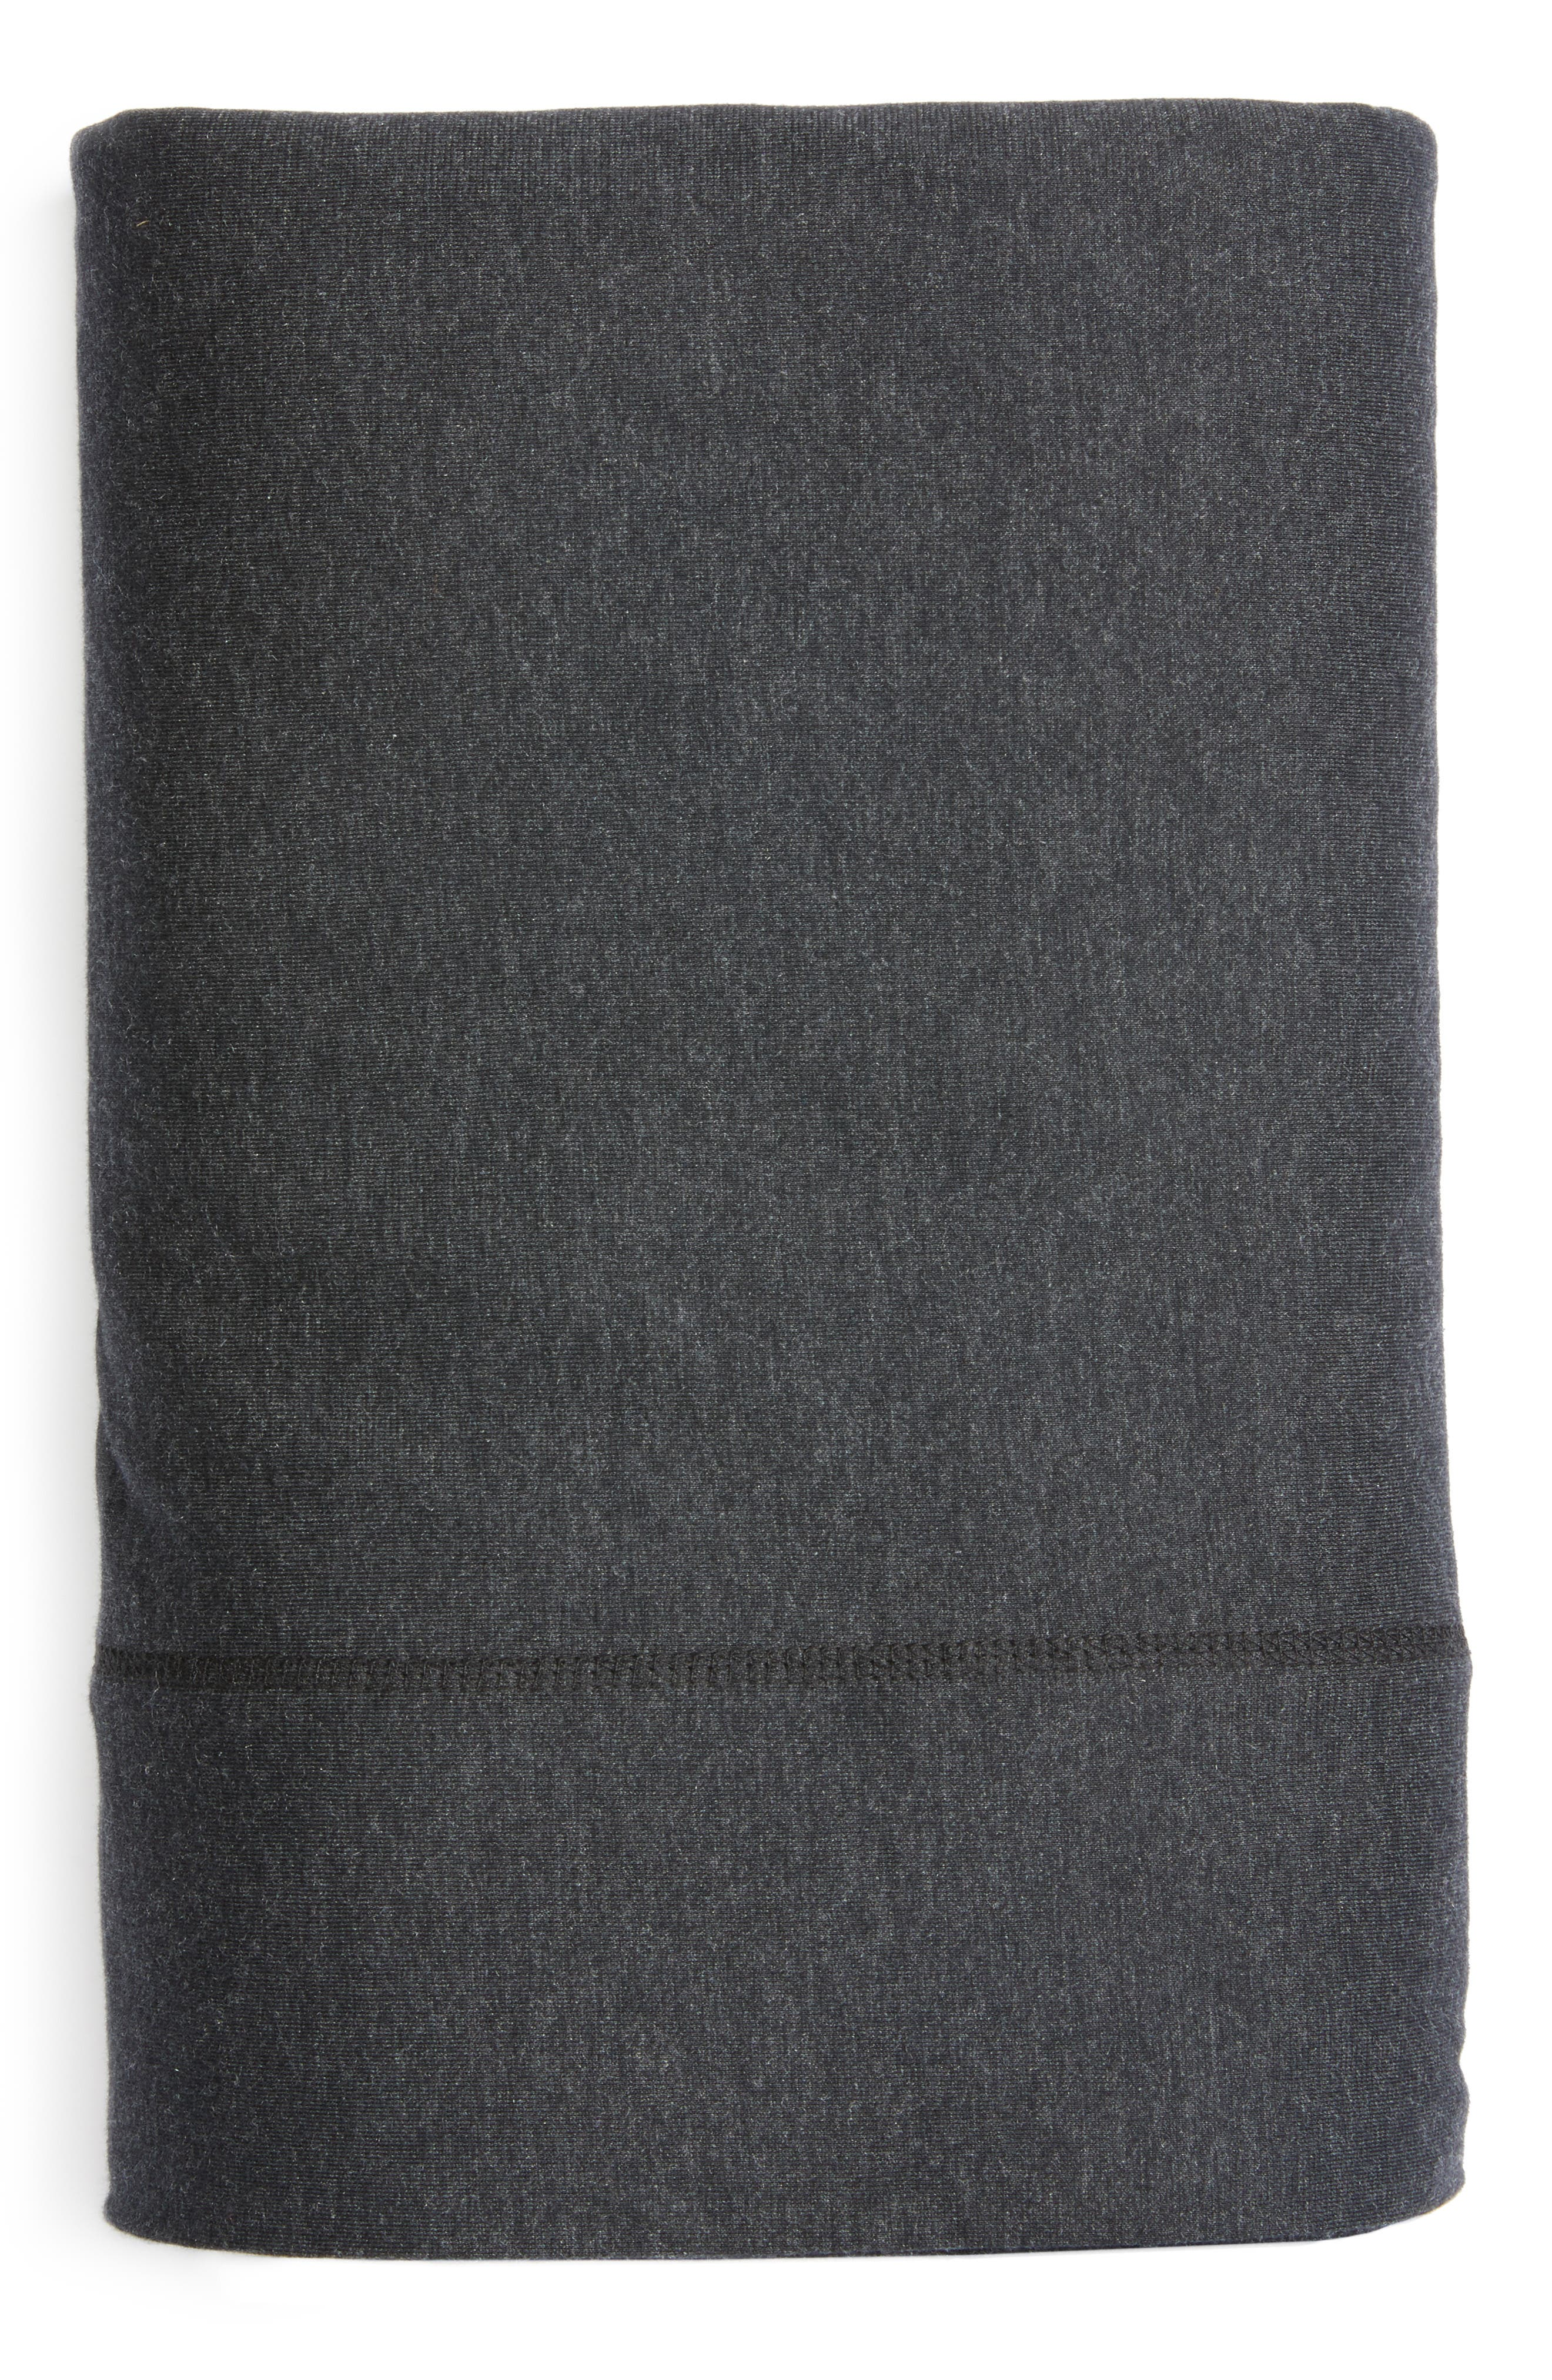 Cotton & Modal Jersey Flat Sheet,                             Main thumbnail 1, color,                             Muted Black